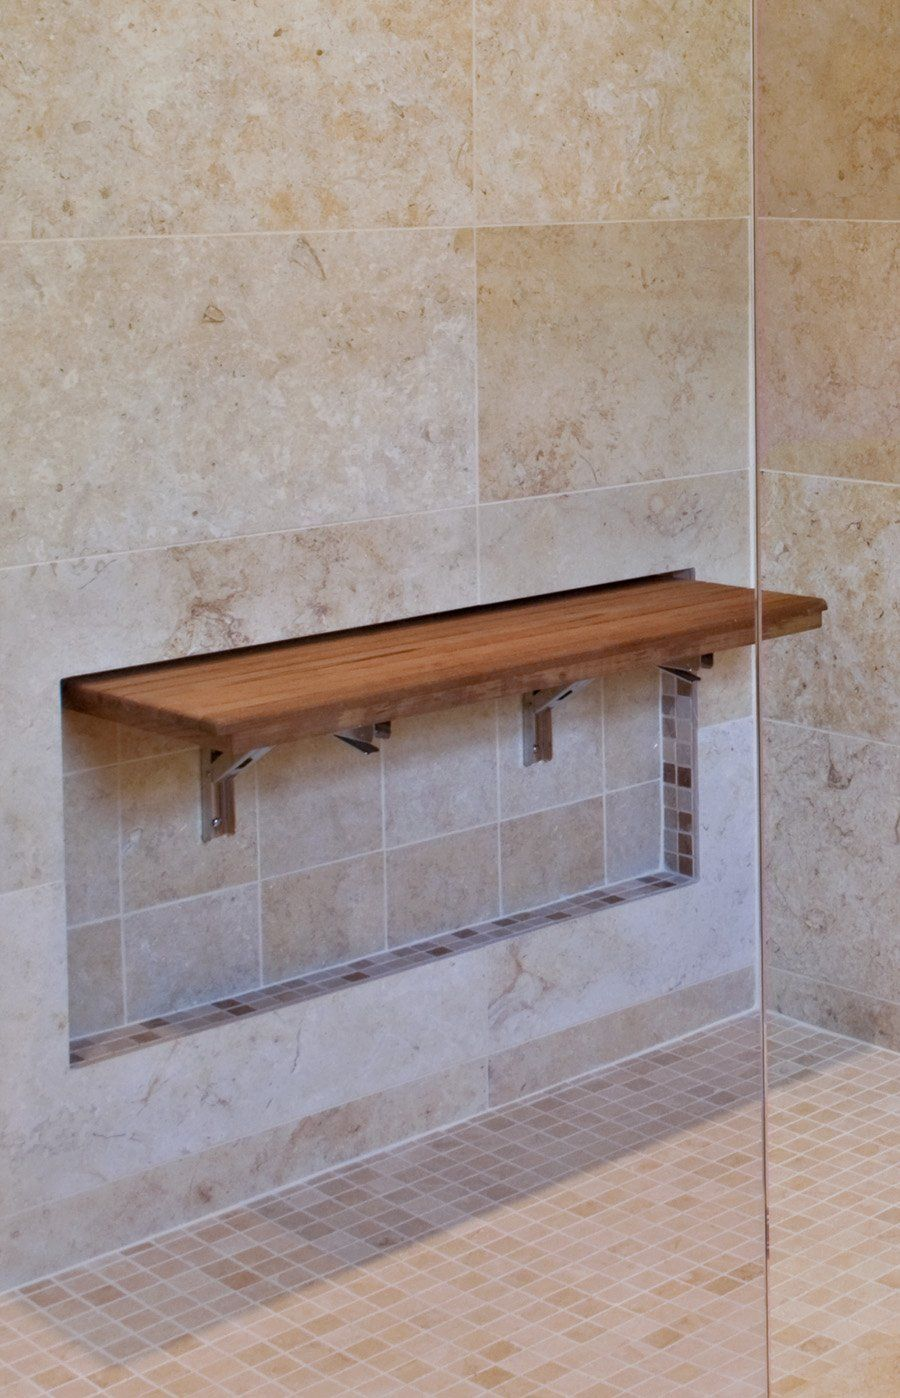 Amazon Com Teak Wall Mount Fold Down Shower Bench Seat